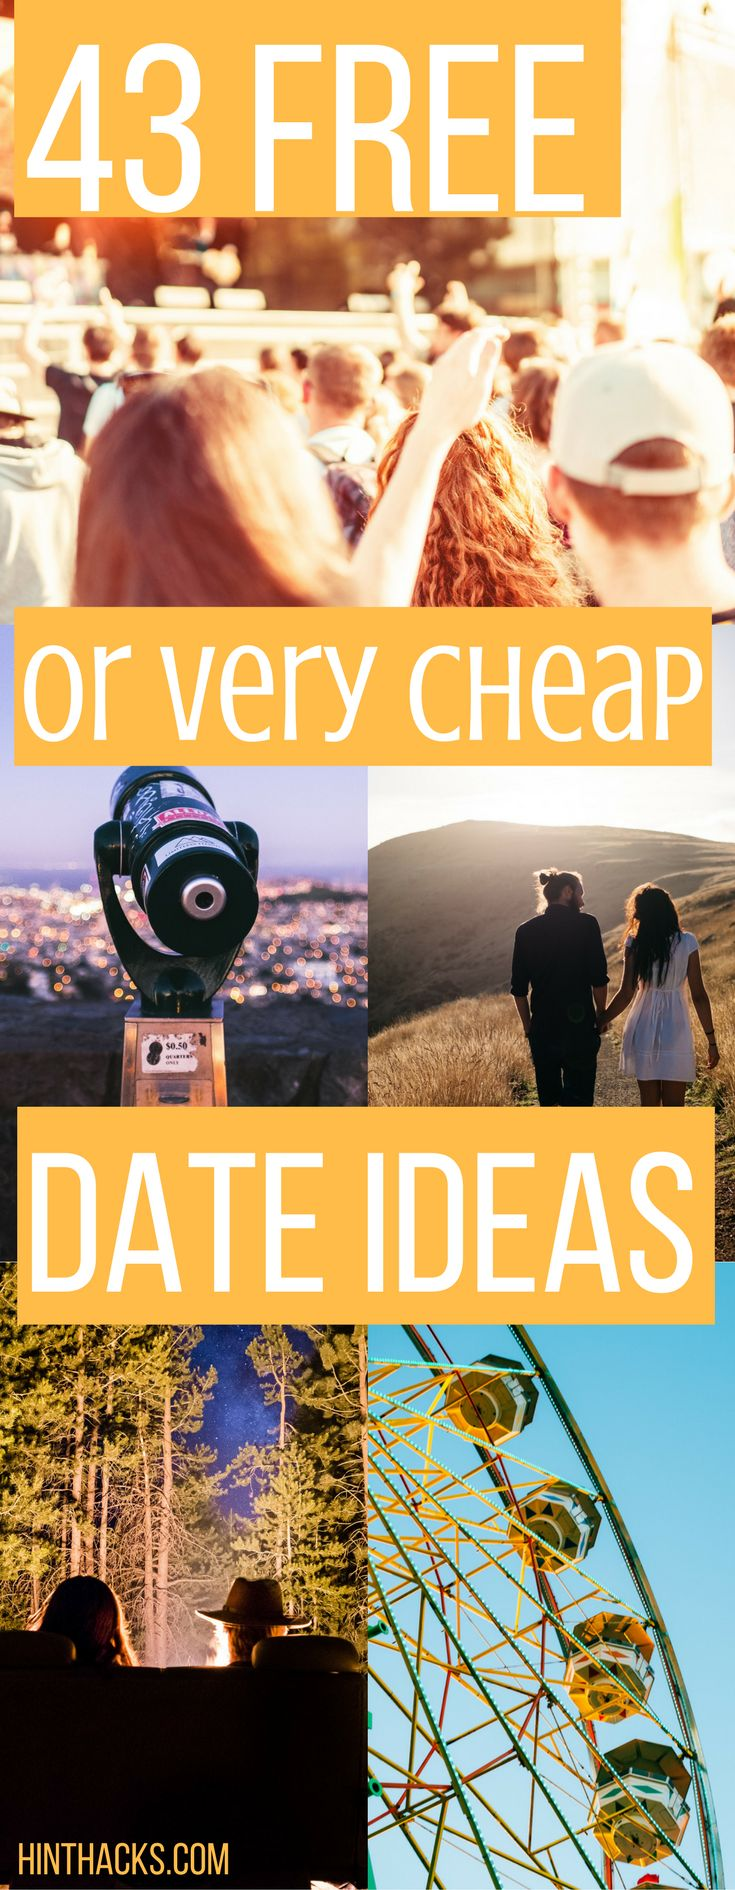 Online dating first date ideas